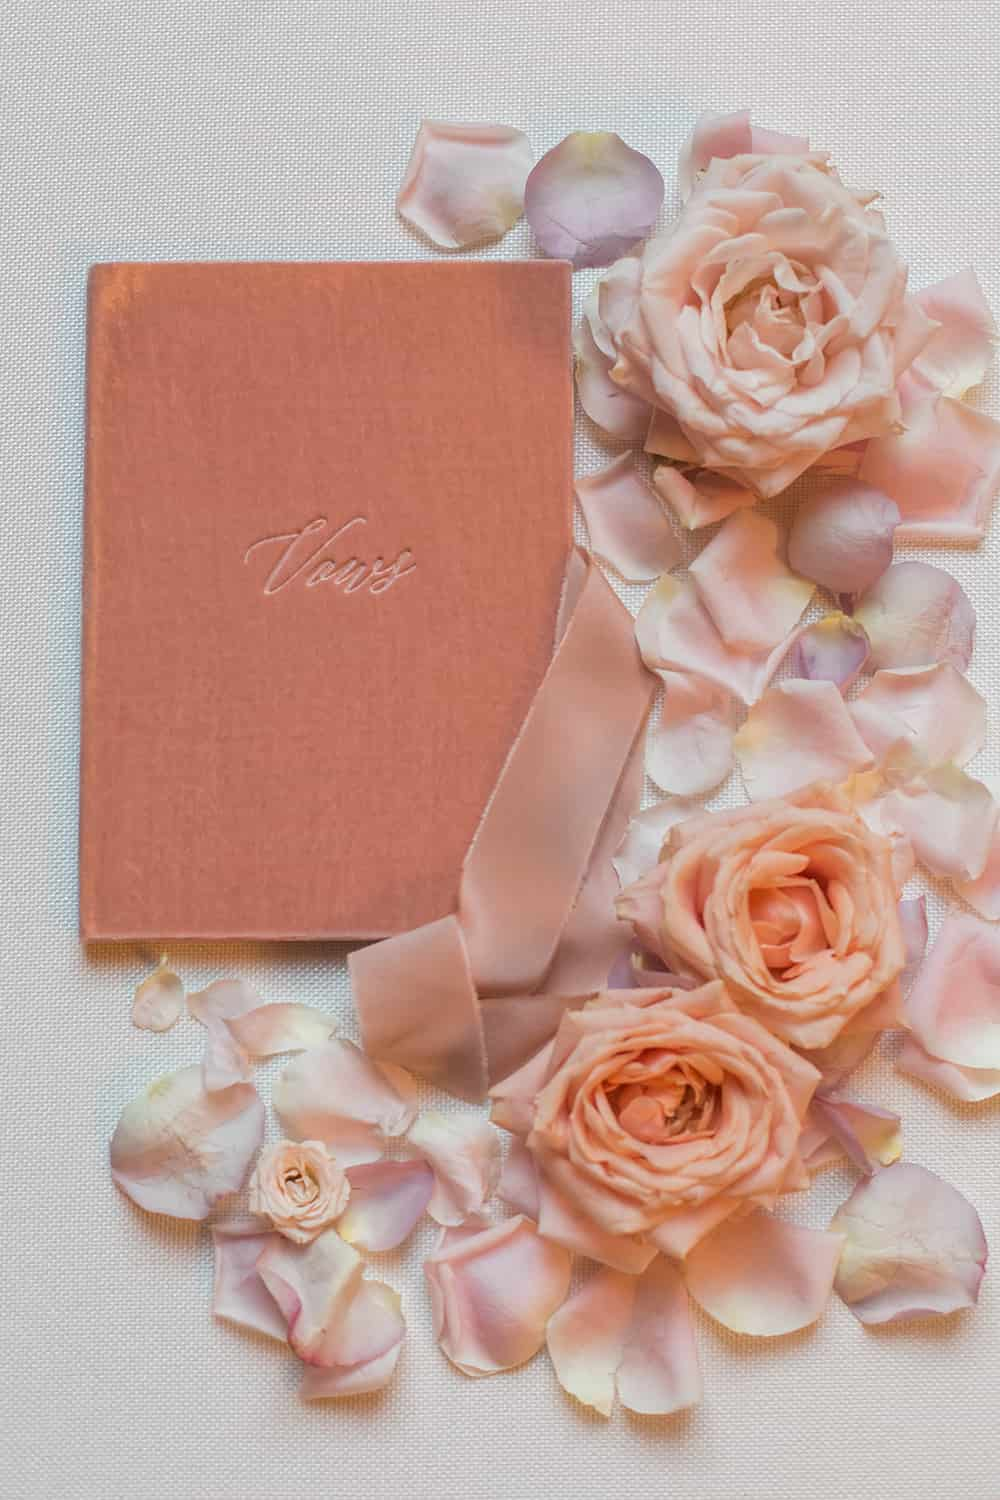 This peach/pastel colour palette was inspired by surrounding objects